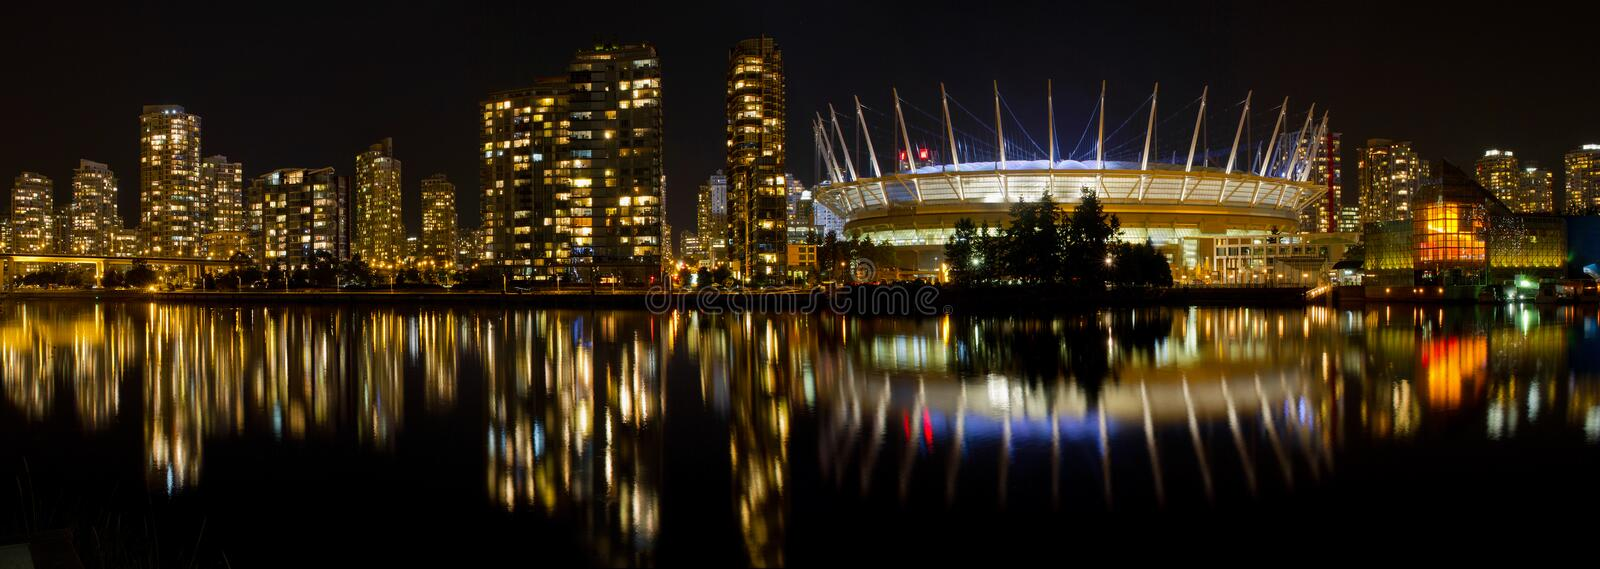 Vancouver BC Skyline along False Creek at Night royalty free stock photo